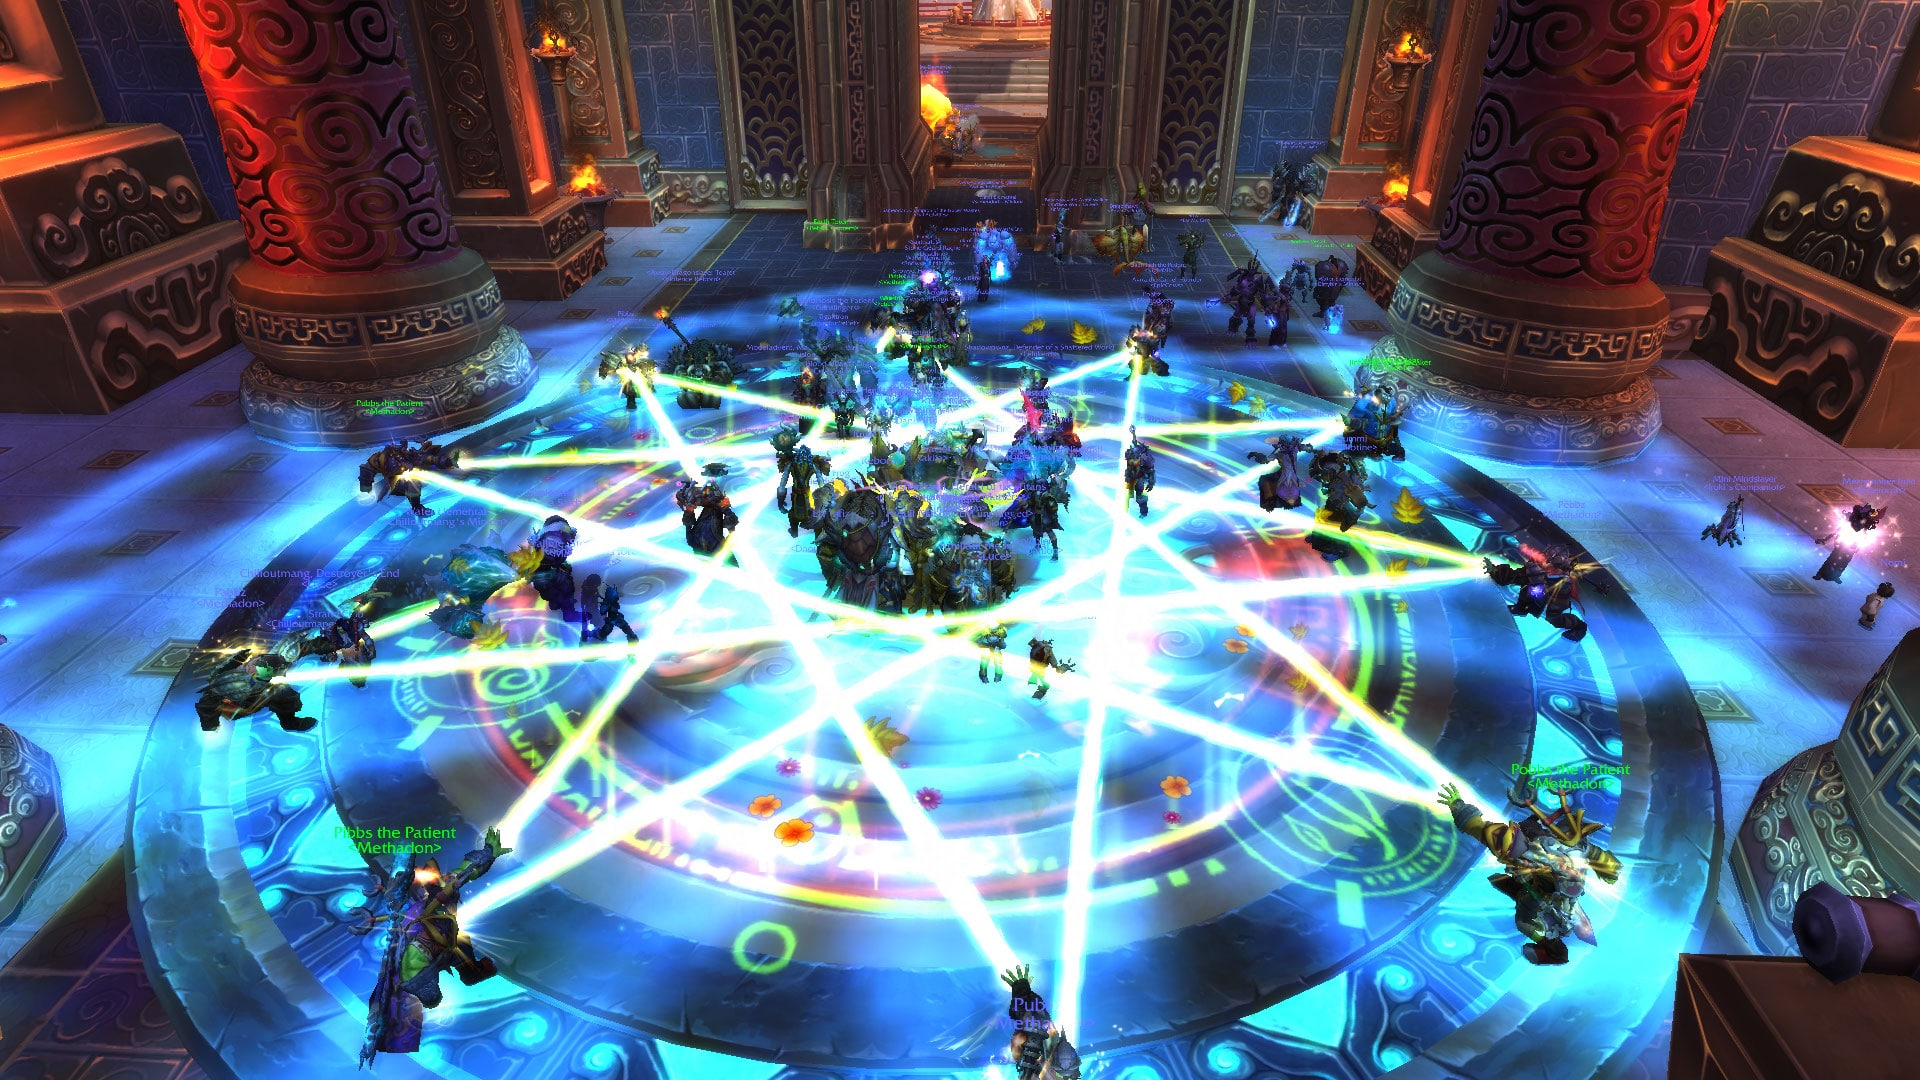 Blizzard Has Provided An Answer To Multiboxing In World of Warcraft